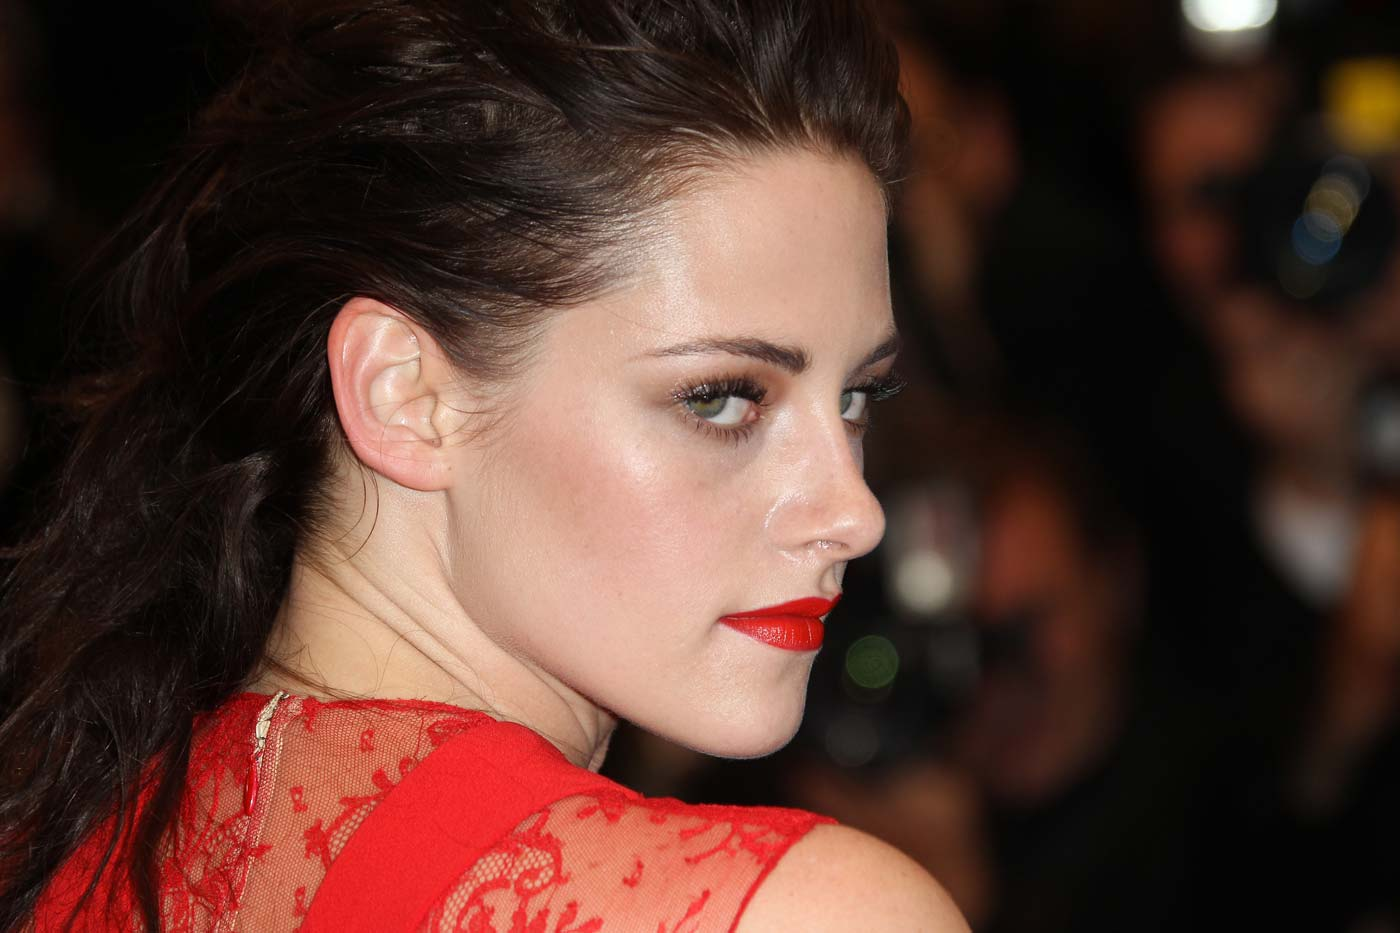 Chanel chooses Kristen Stewart as face of Métiers d'Art collection